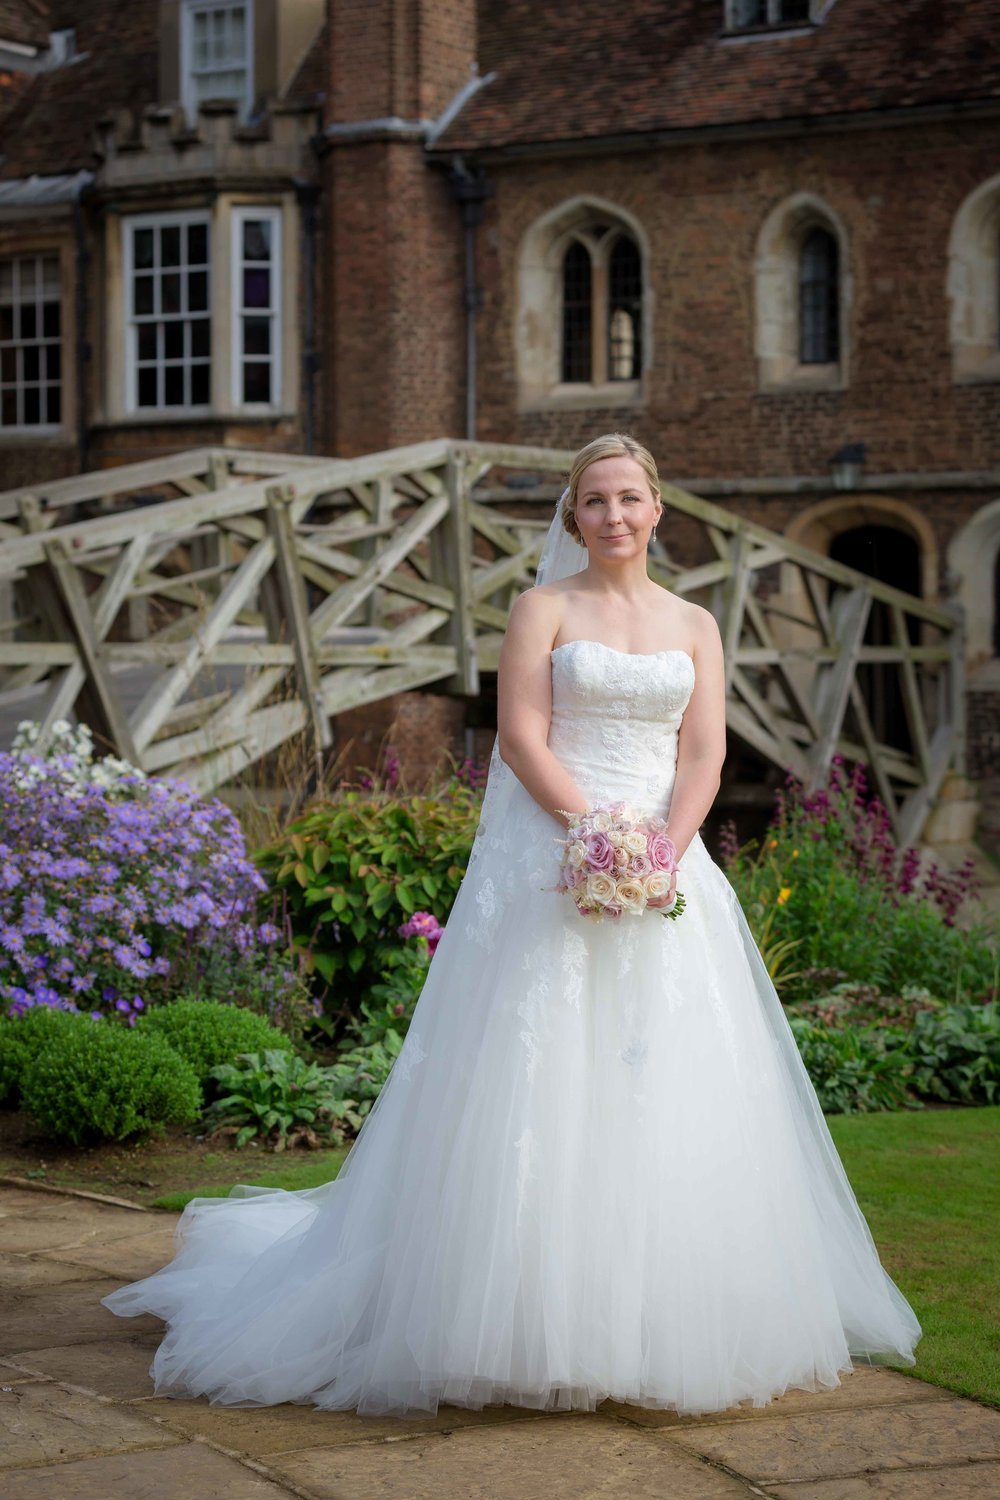 Adrian_Nicole_Charnwood_Weddings_Queens_College_Cambridge-1002.jpg